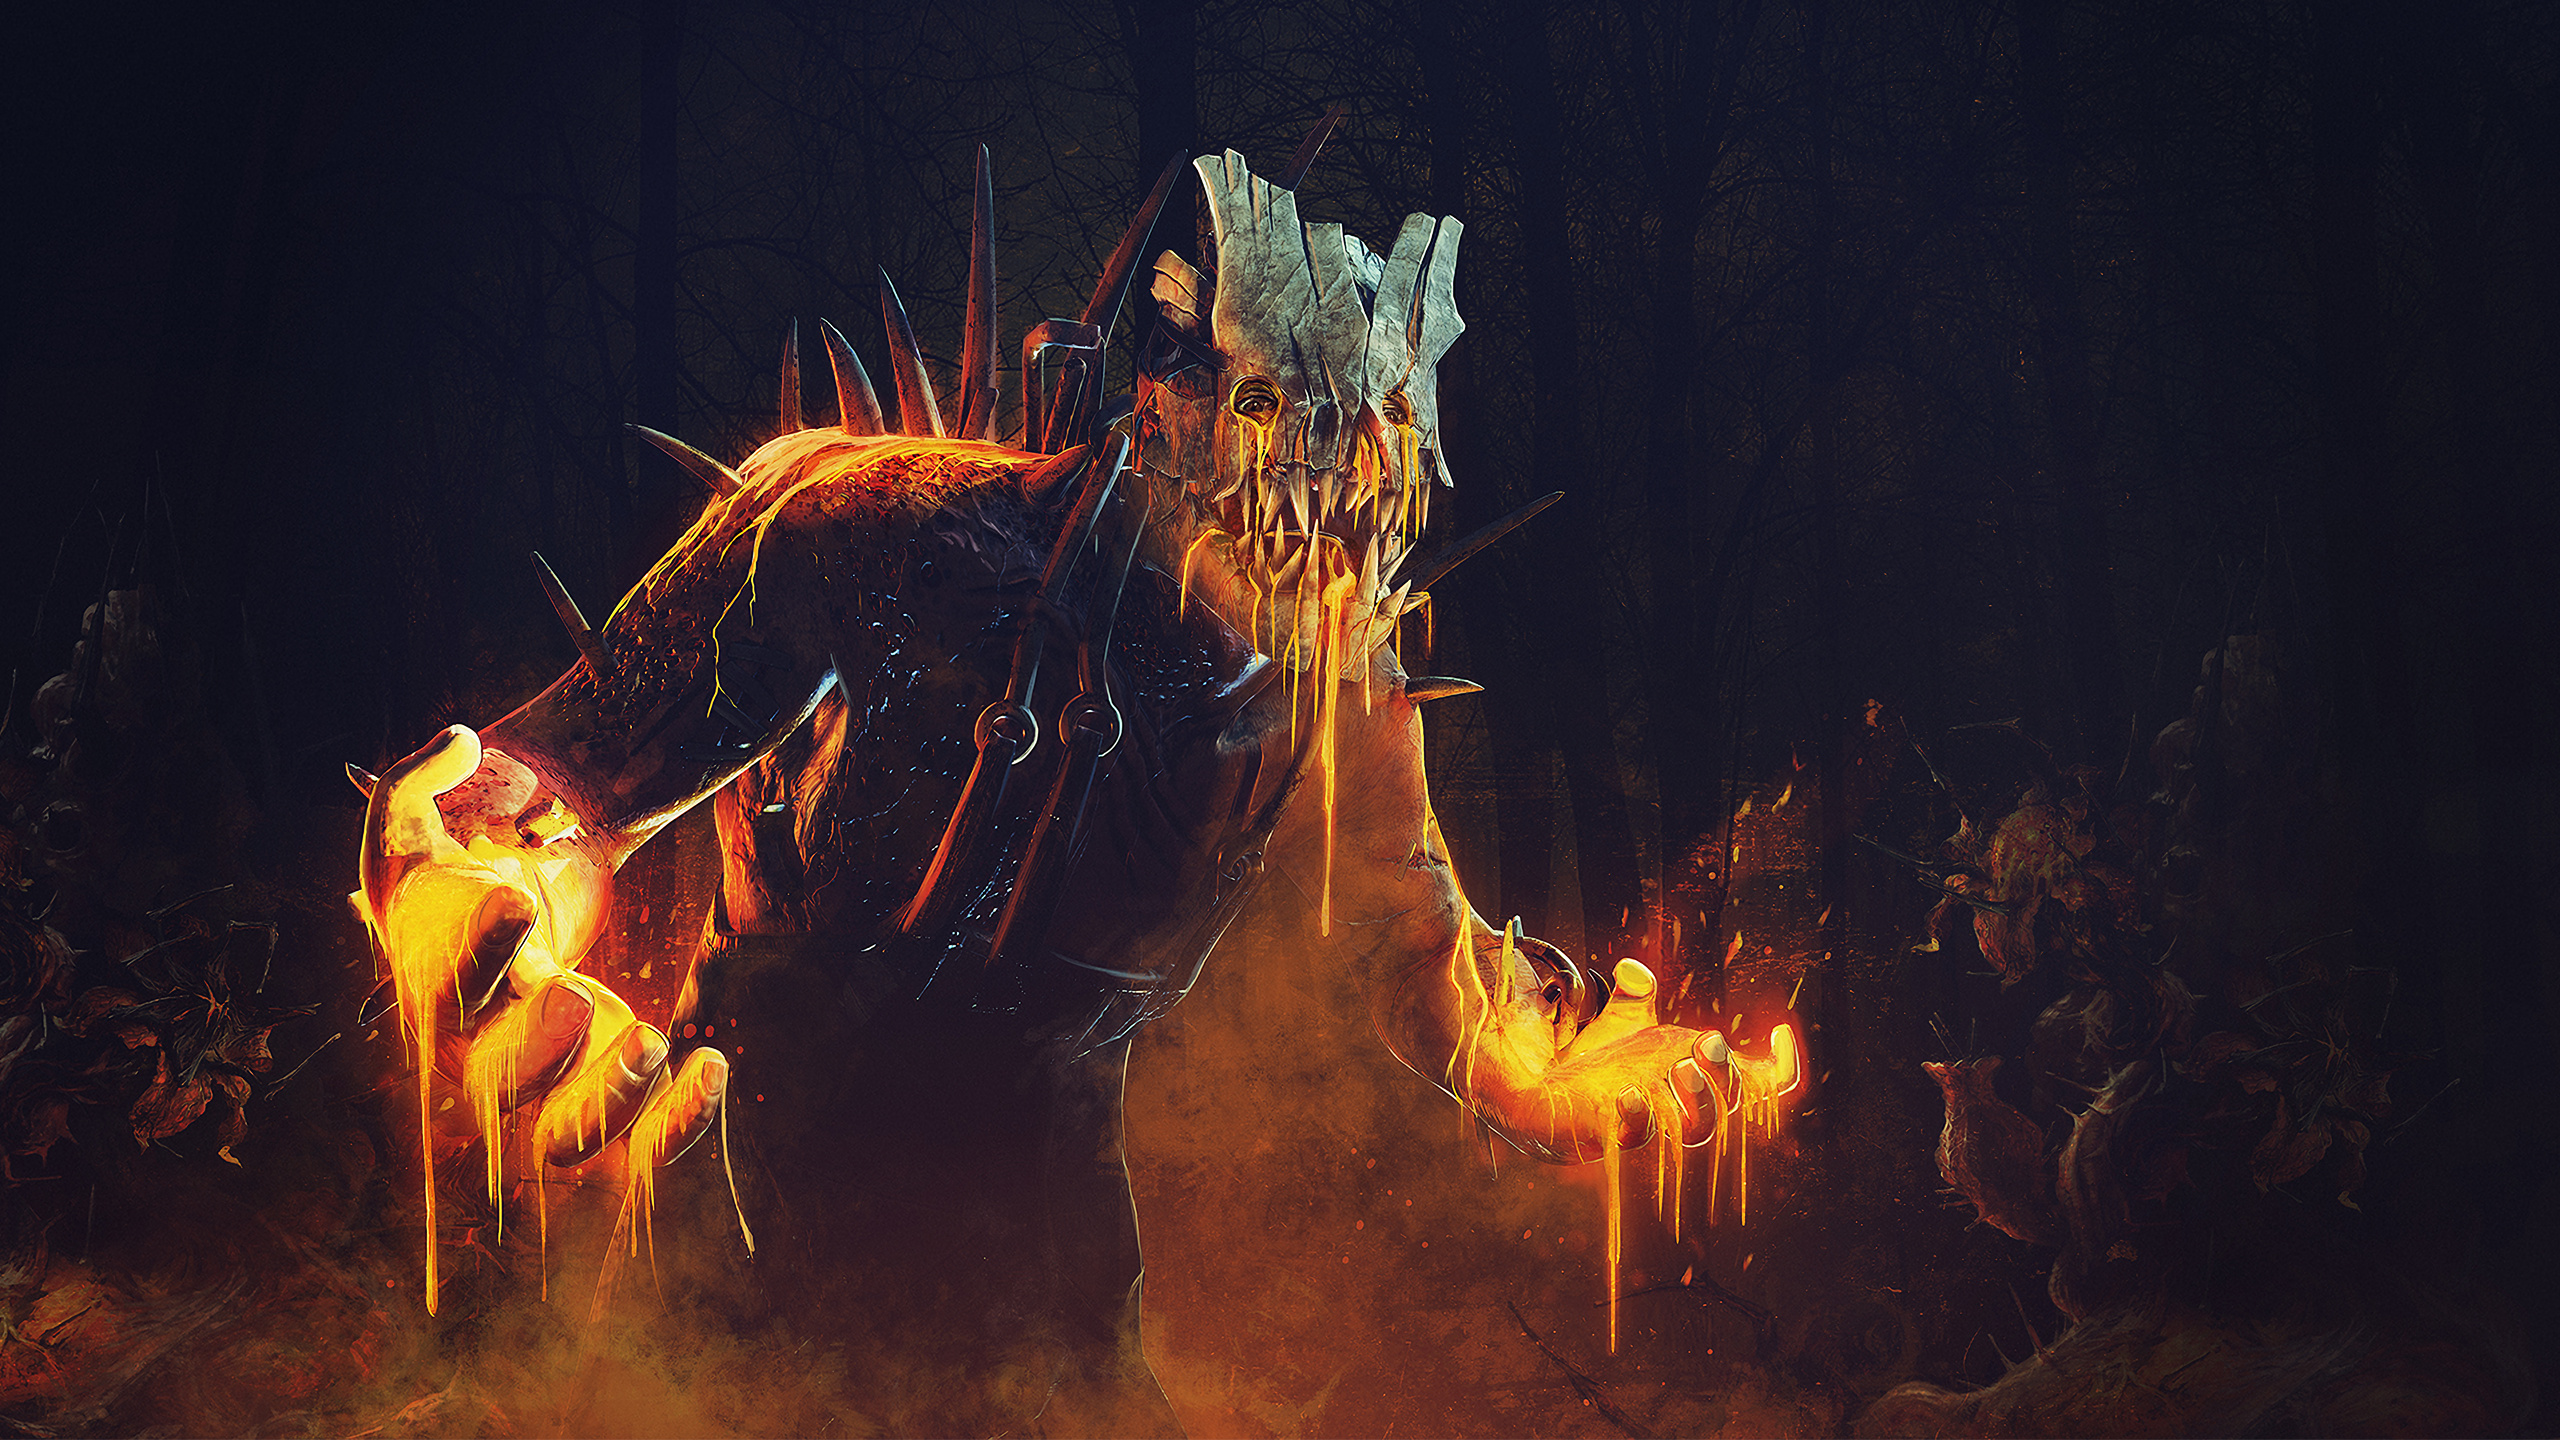 Dead By Daylight HD Wallpapers - Wallpaper Cave